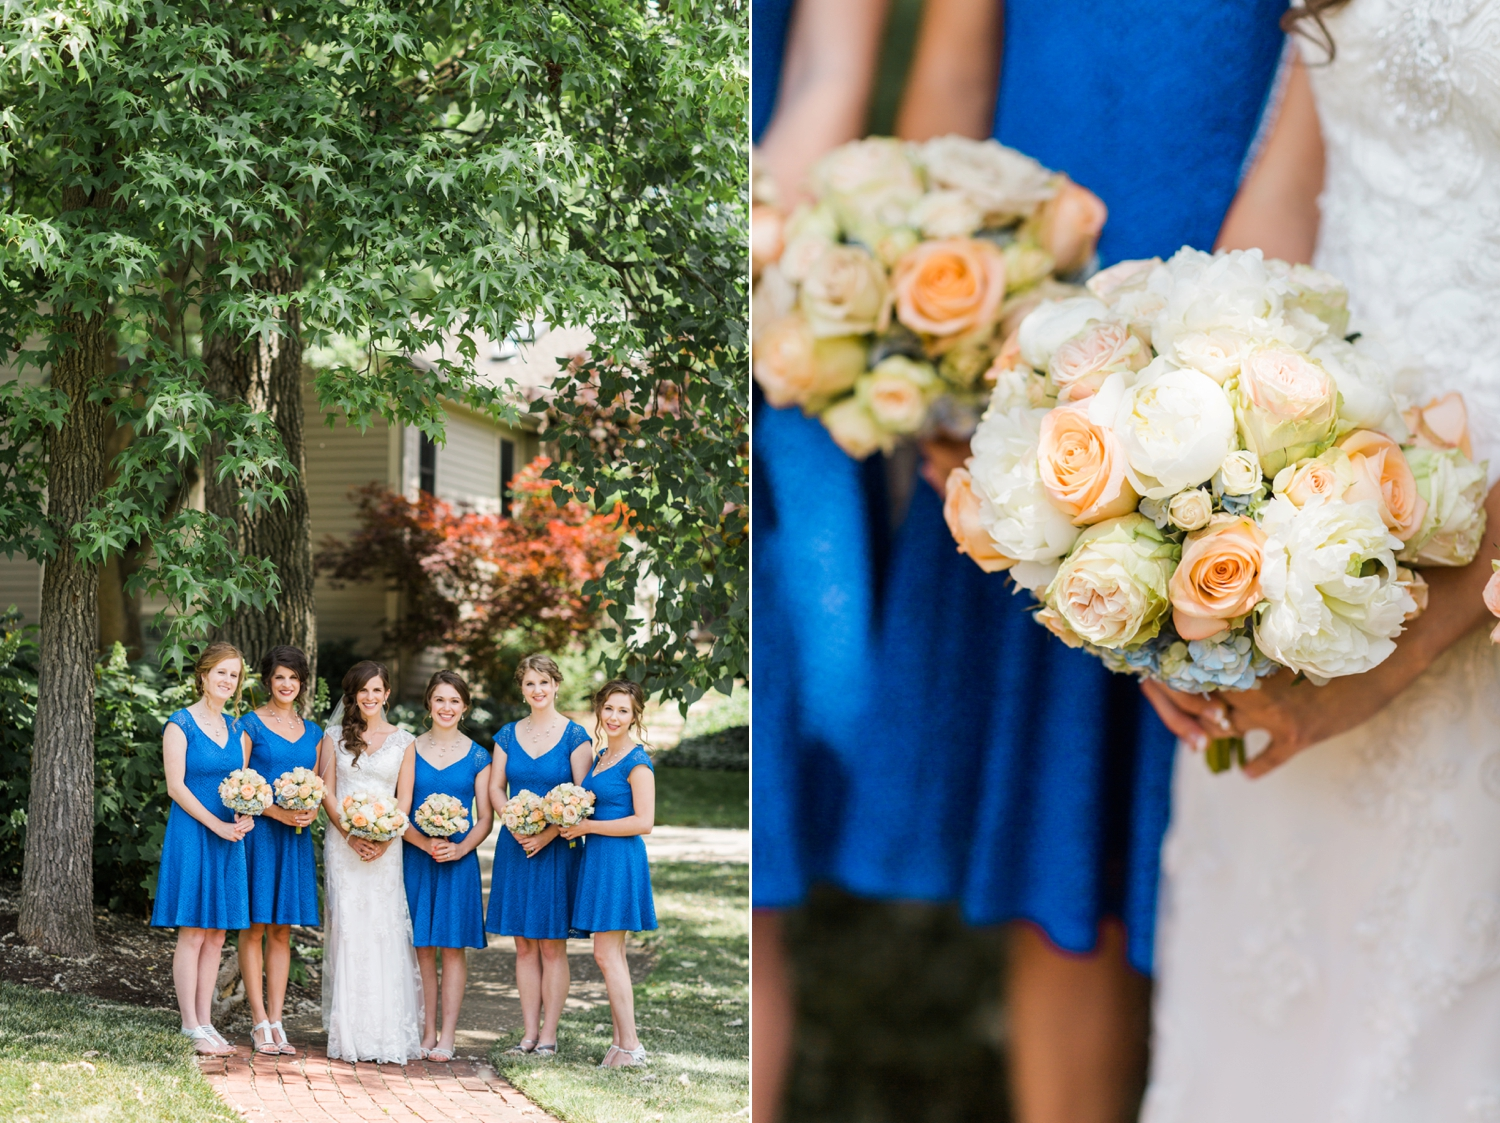 NCR_Country_Club_Kettering_Ohio_Wedding_Photography_Chloe_Luka_Photography_7079.jpg